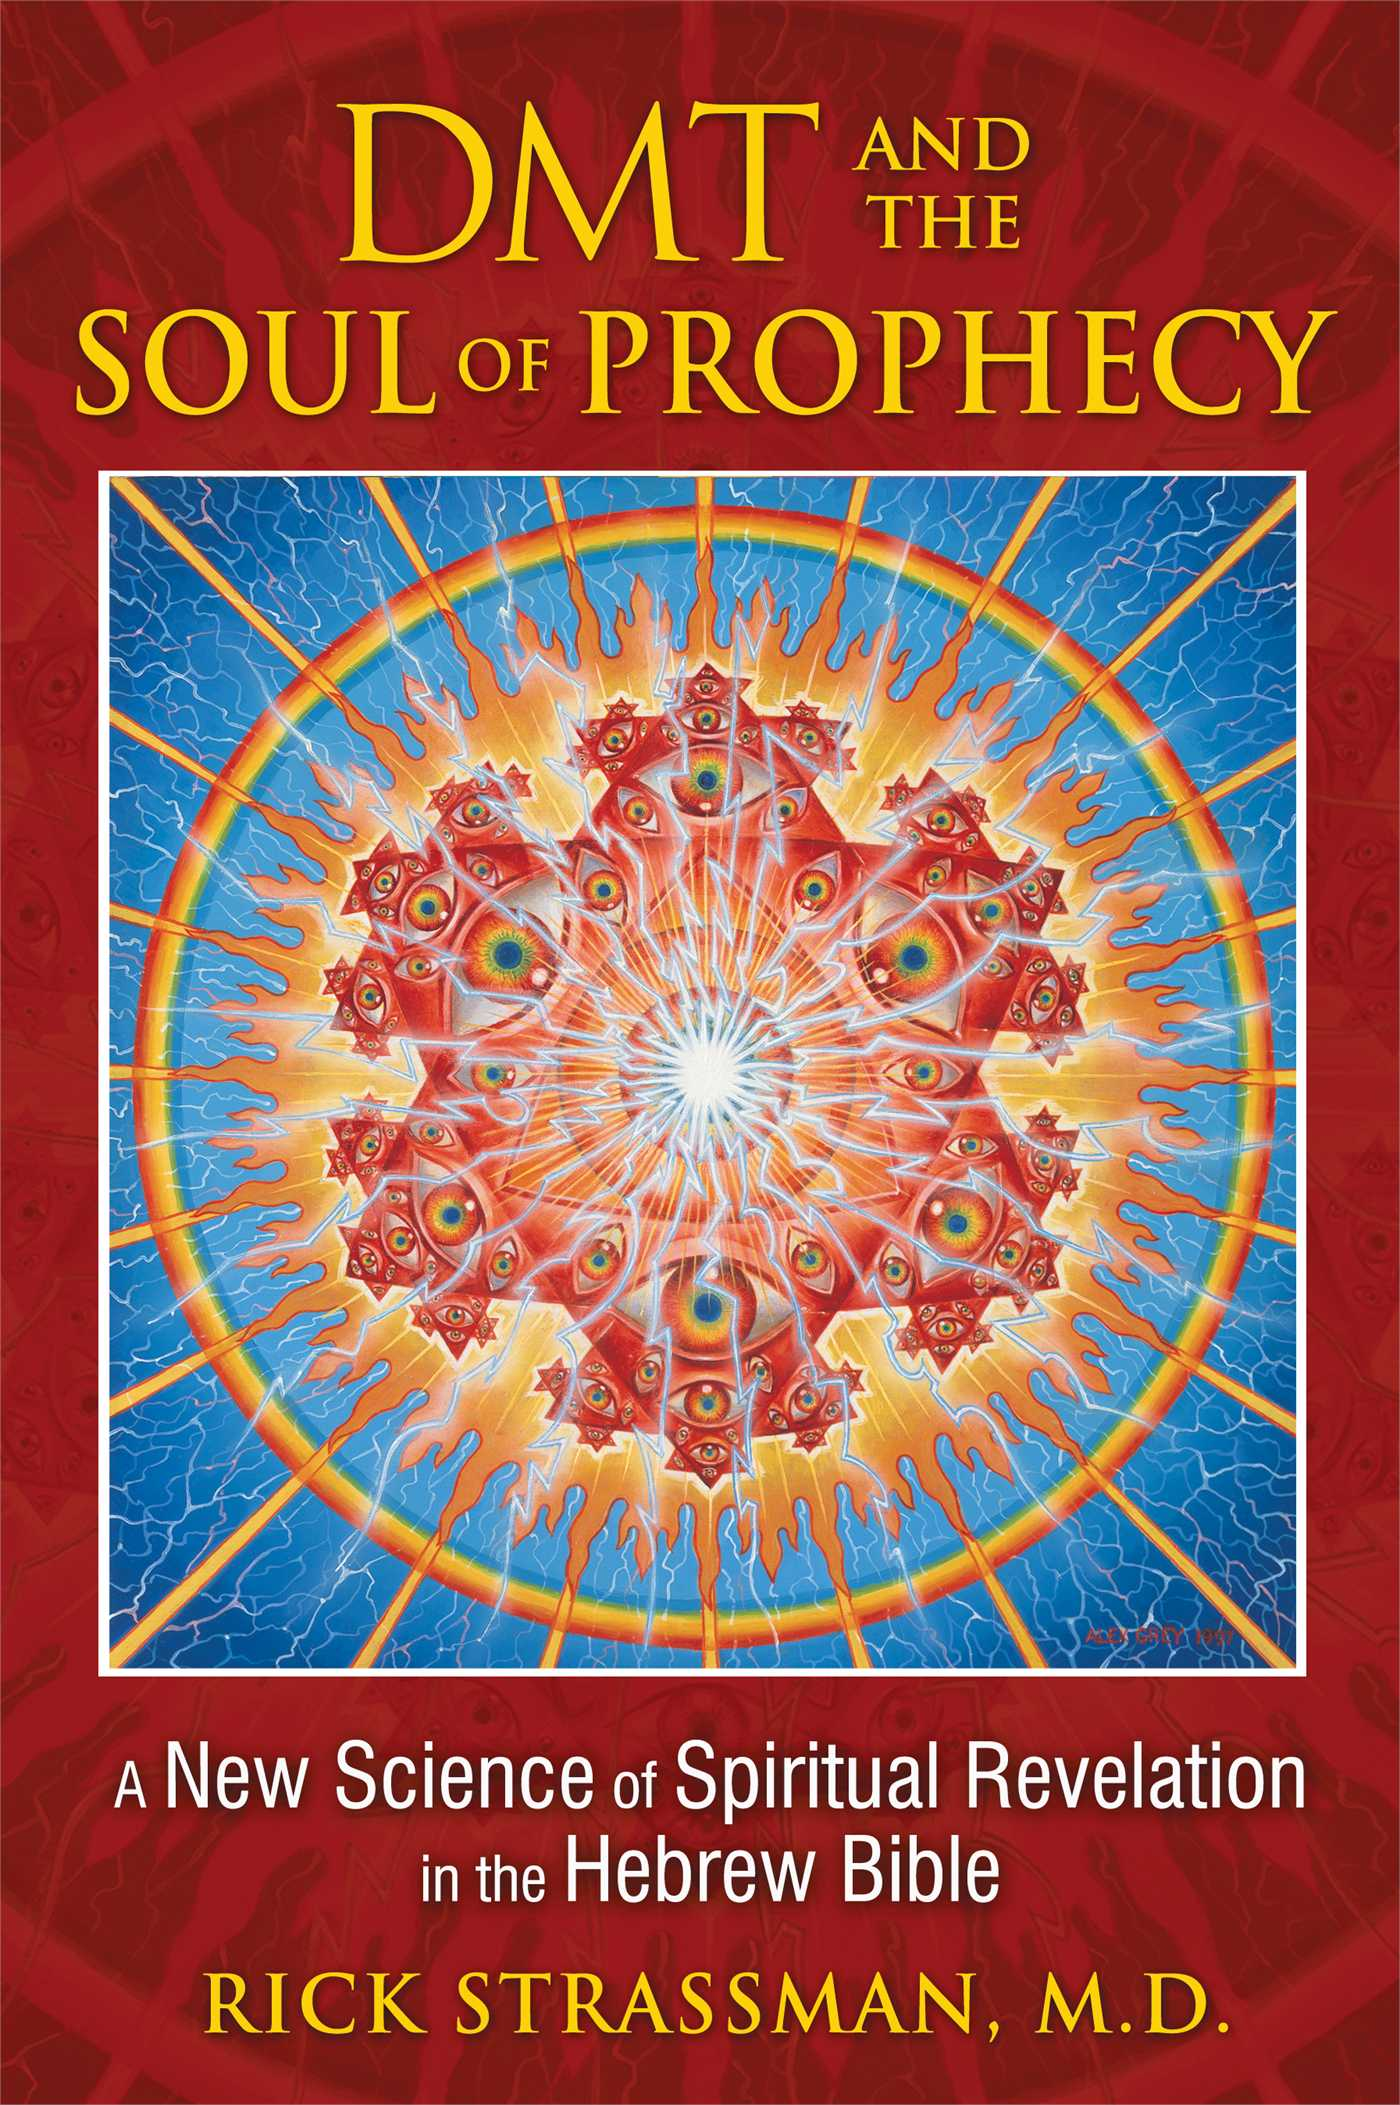 Dmt-and-the-soul-of-prophecy-9781594773426_hr